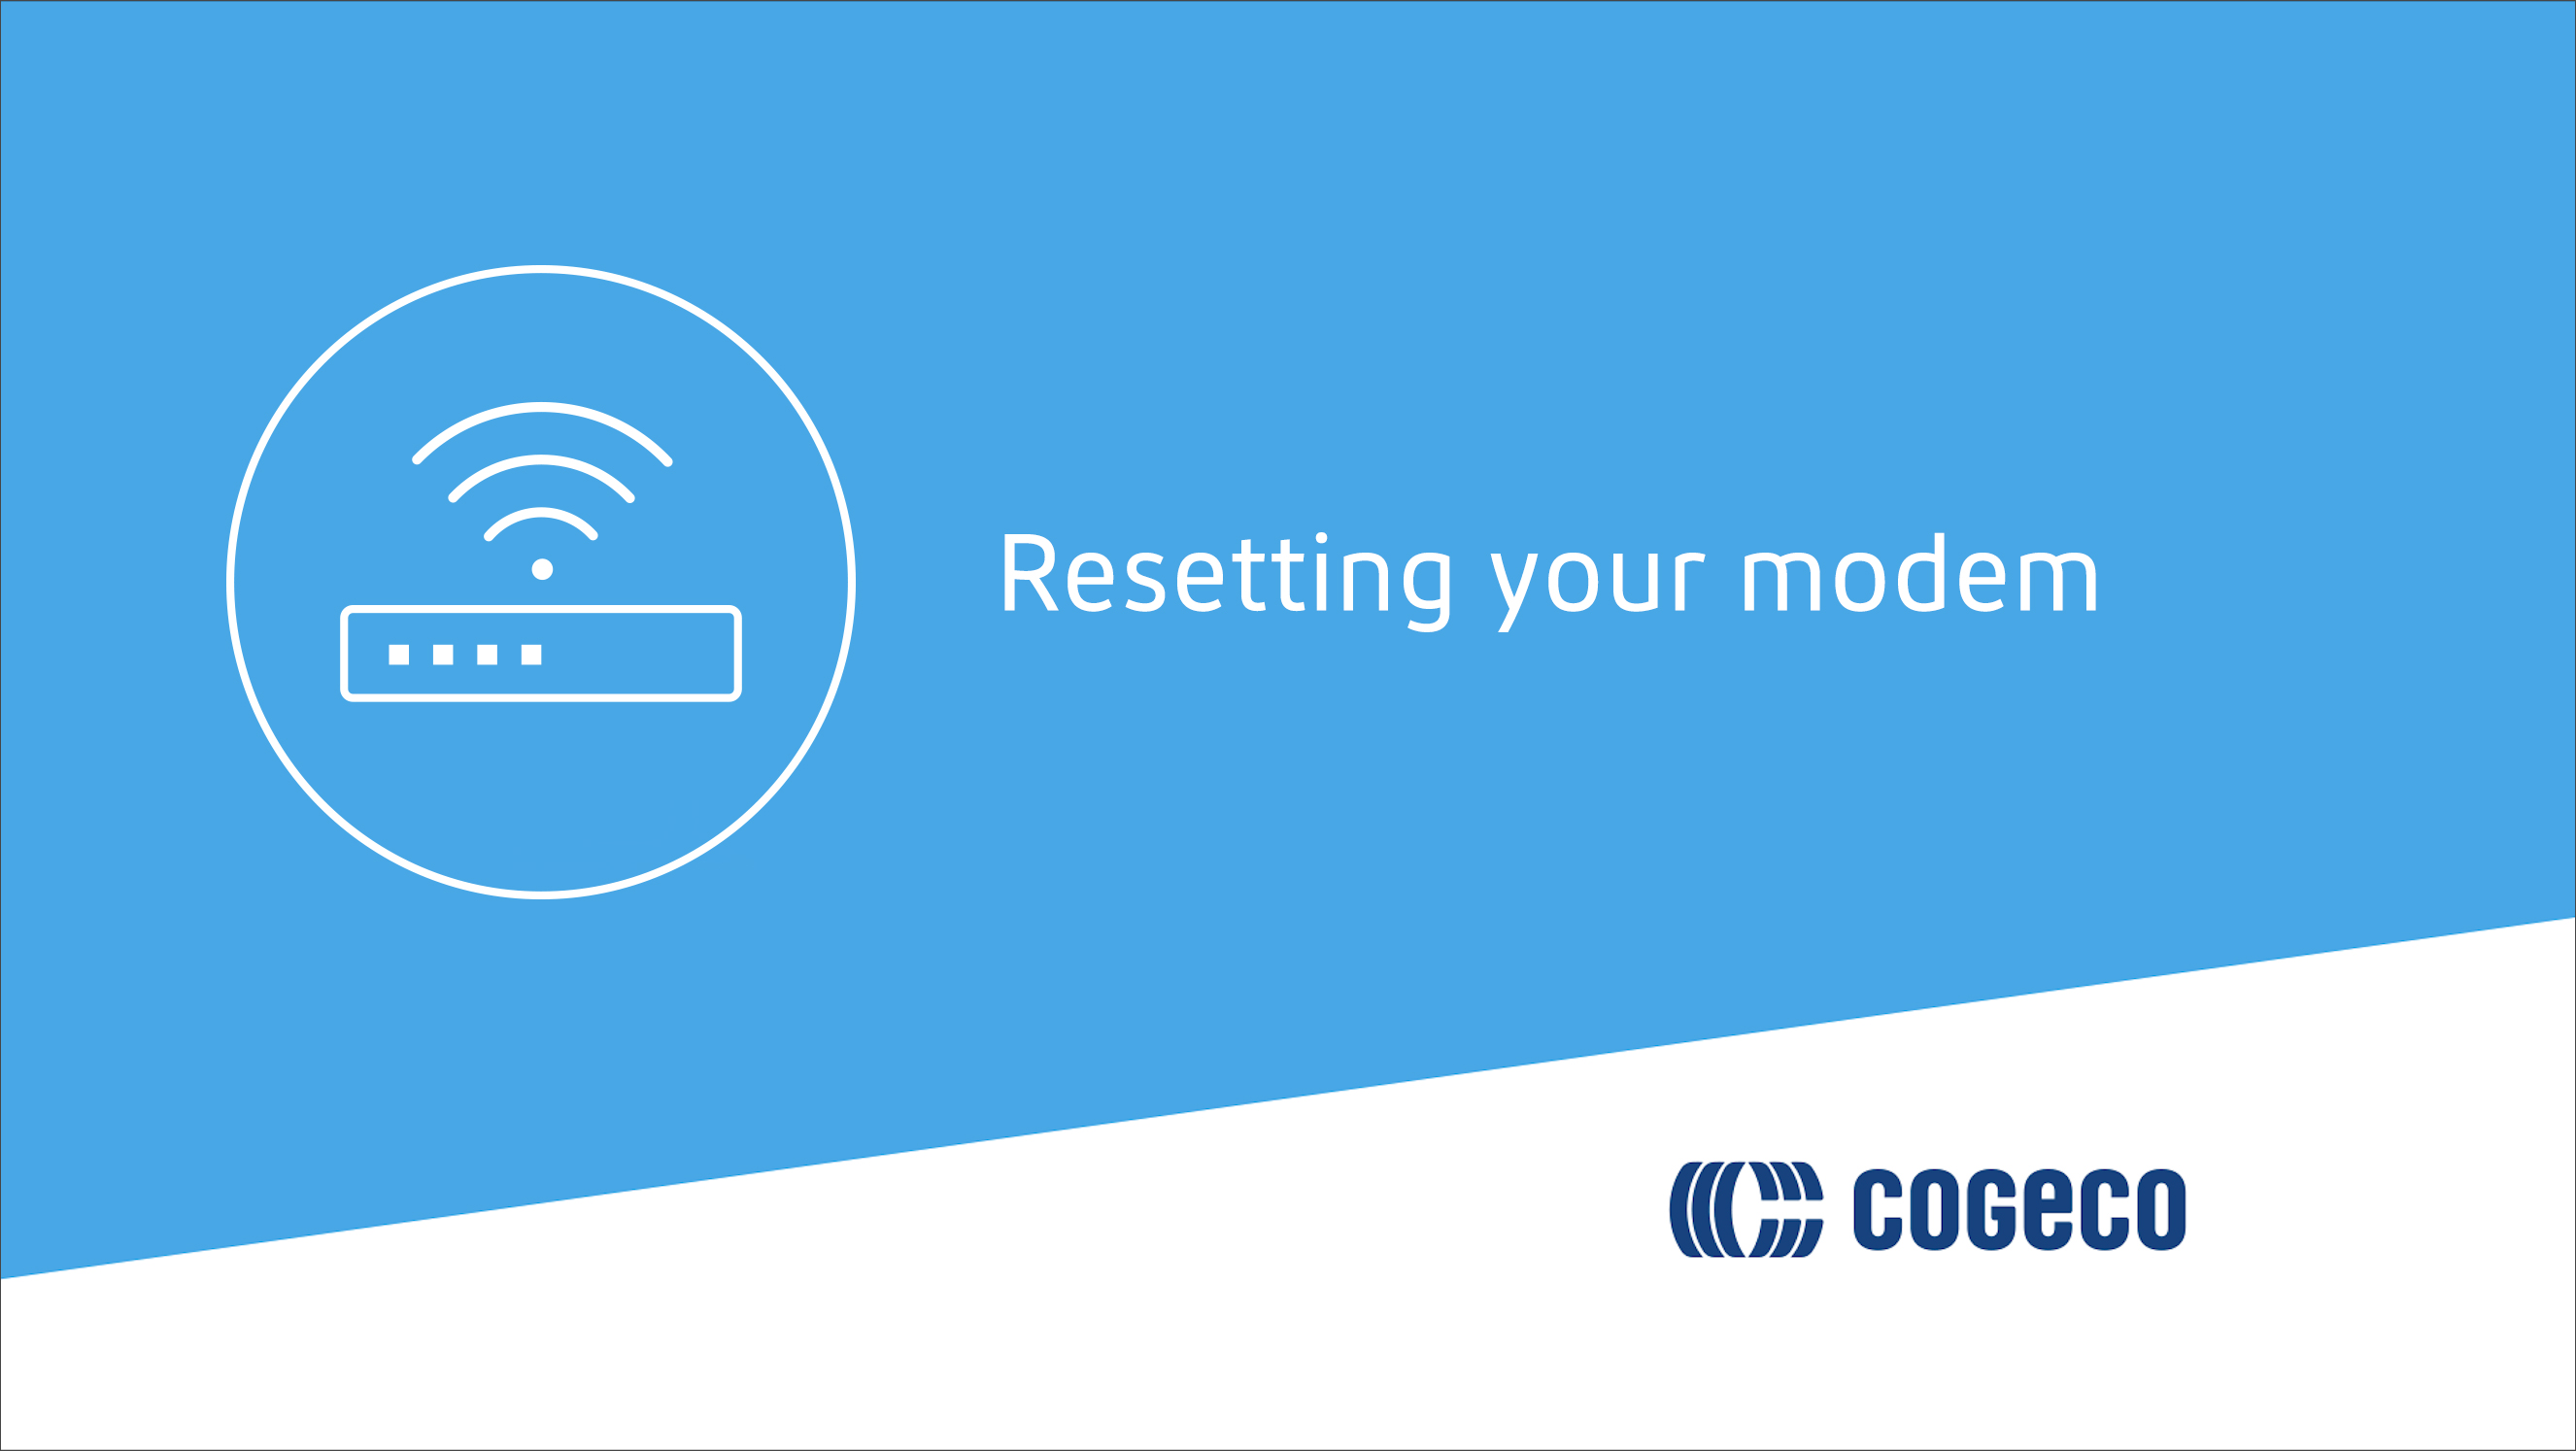 Resetting your modem